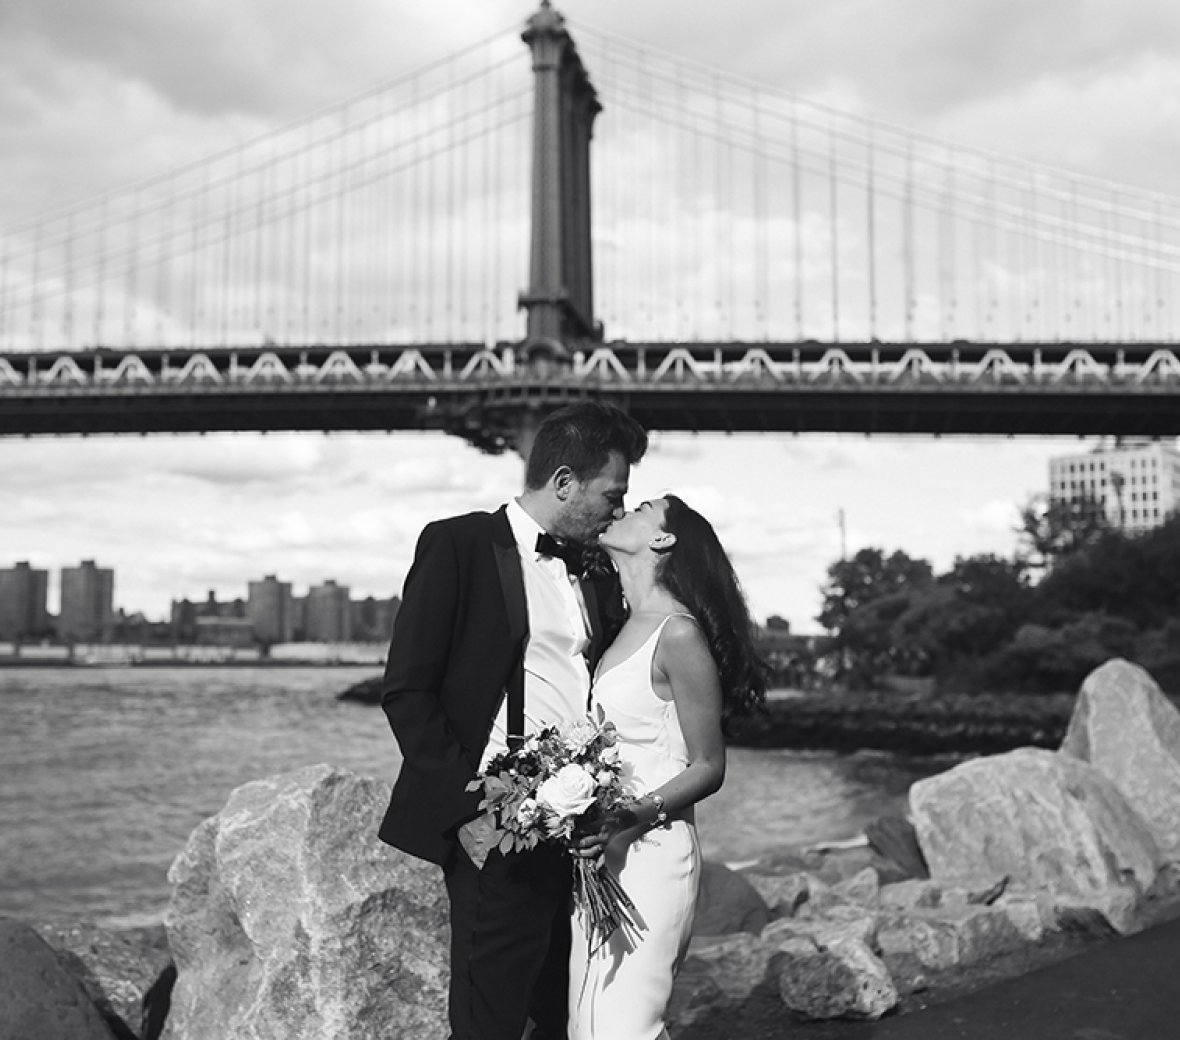 A black and white image of a bride and groom kissing at the Brooklyn Bridge.